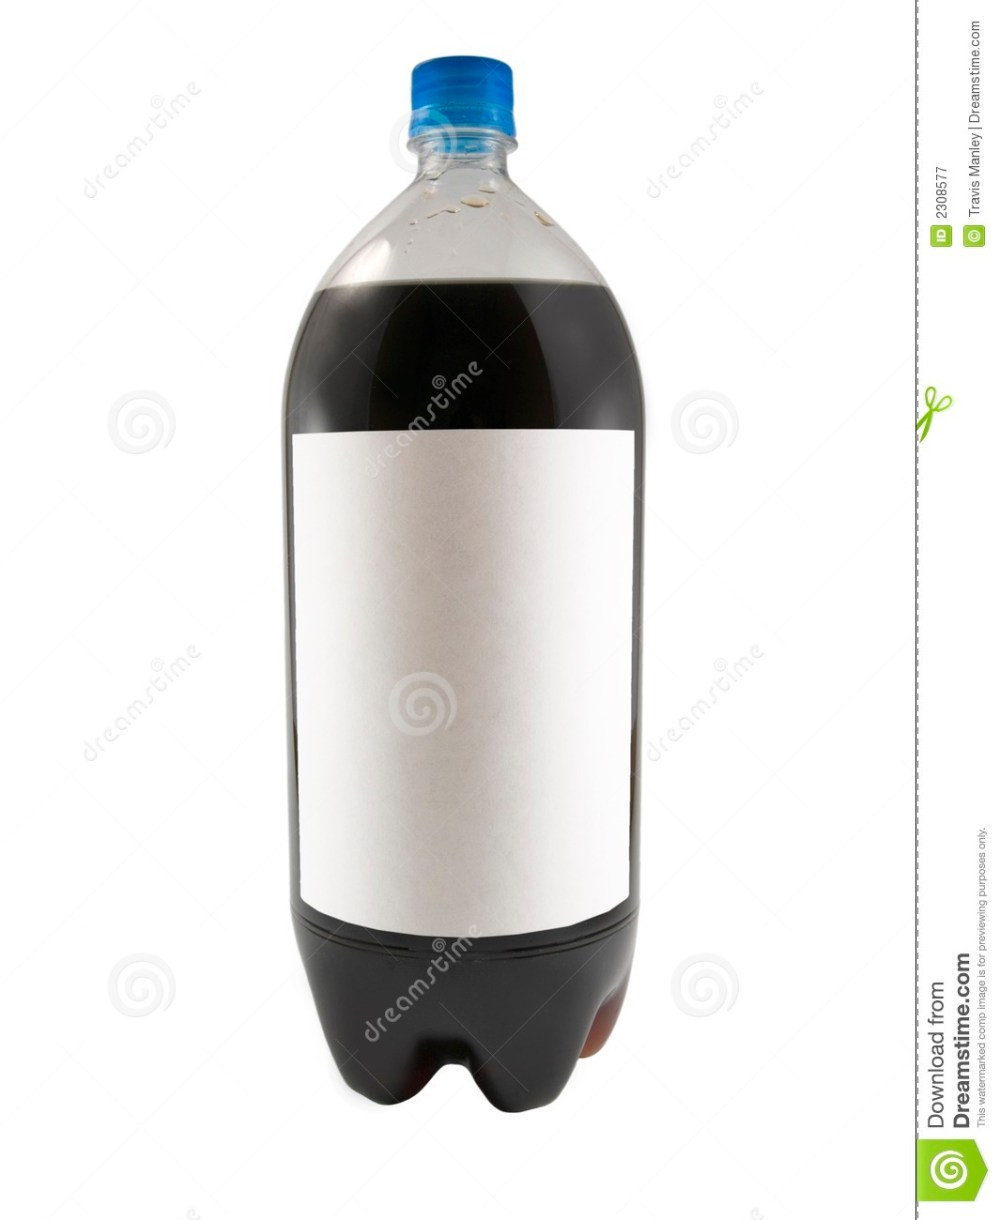 medium resolution of a close up on a soda bottle isolated on a white background with a blank label